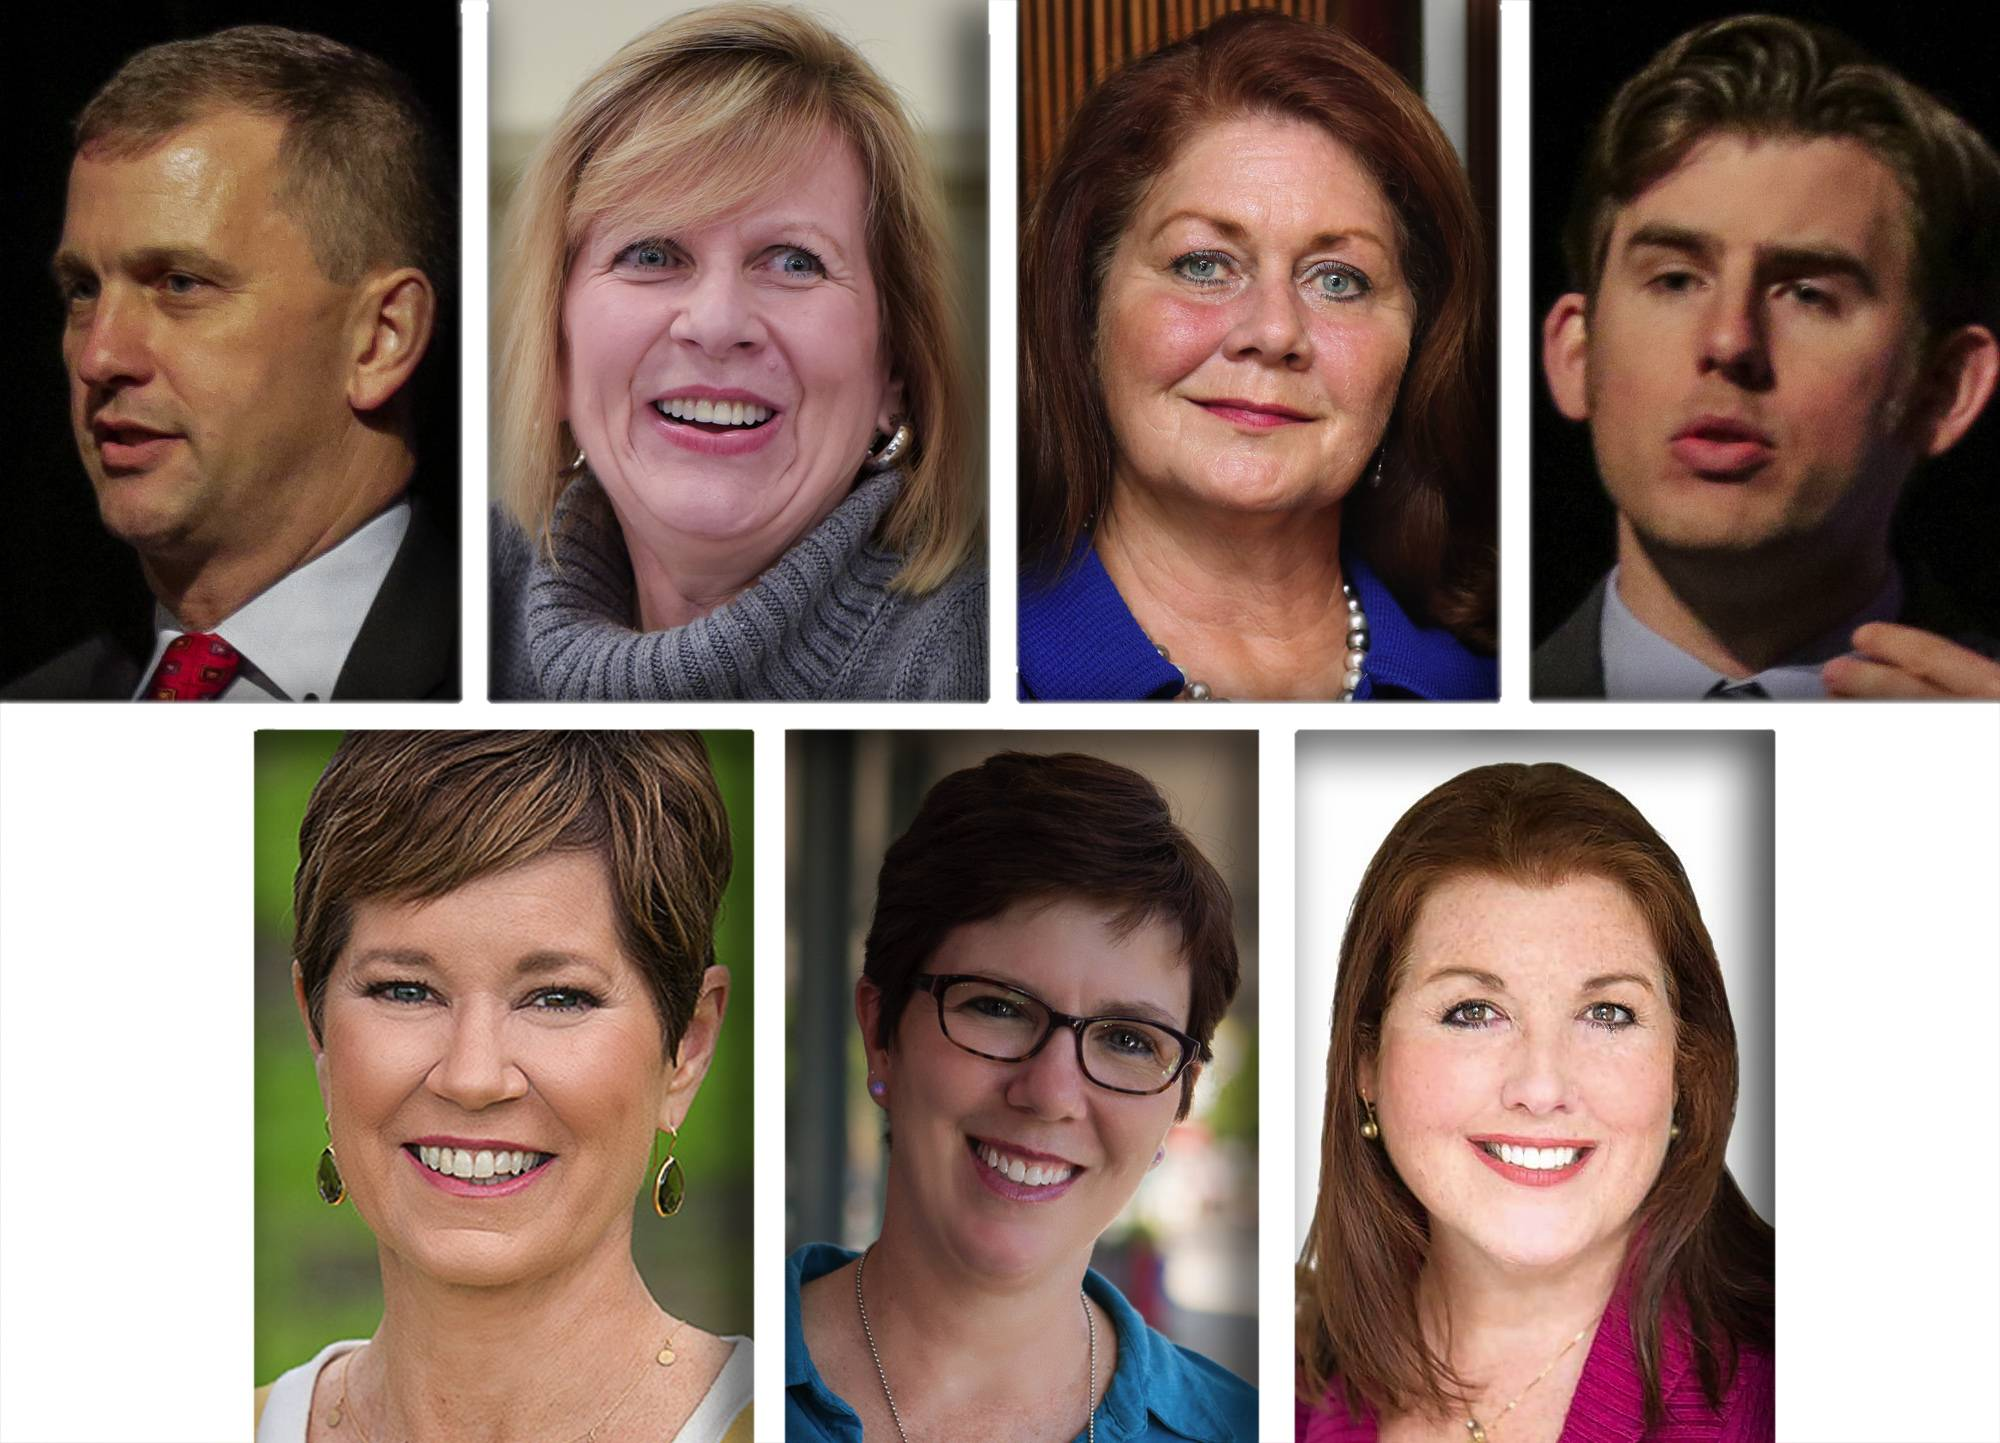 6th District hopefuls trying new strategies to campaign, win, learn